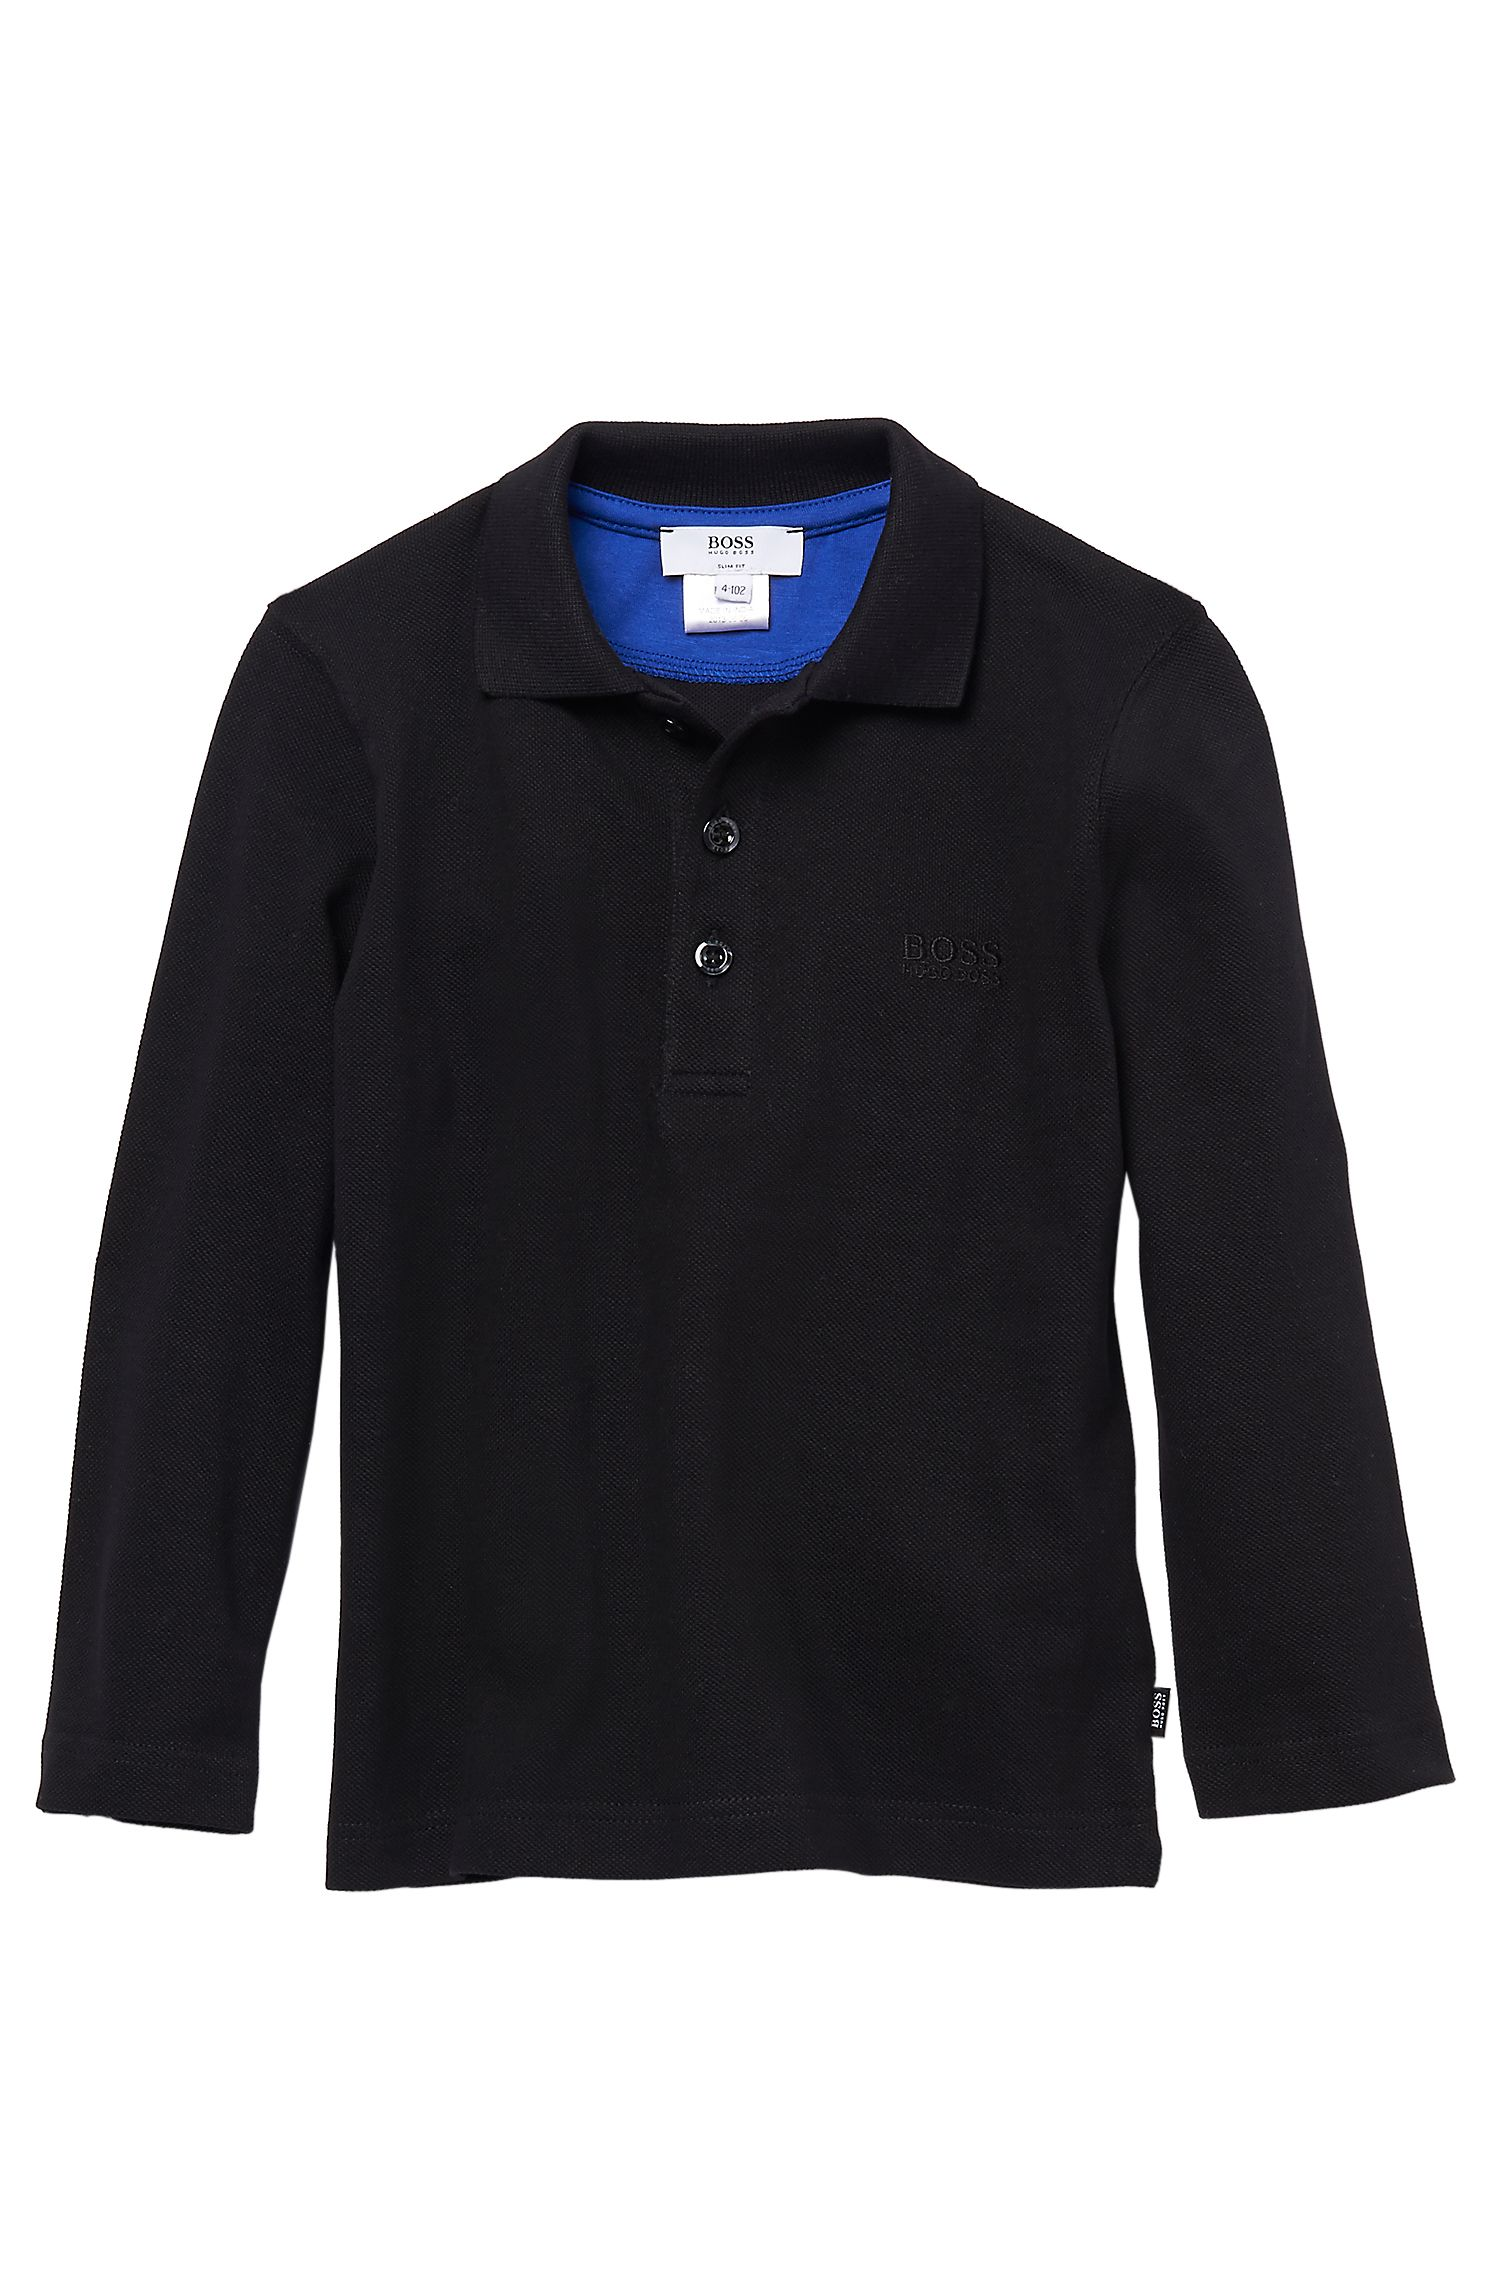 'J25545' | Boys Long-Sleeved Cotton Polo Shirt